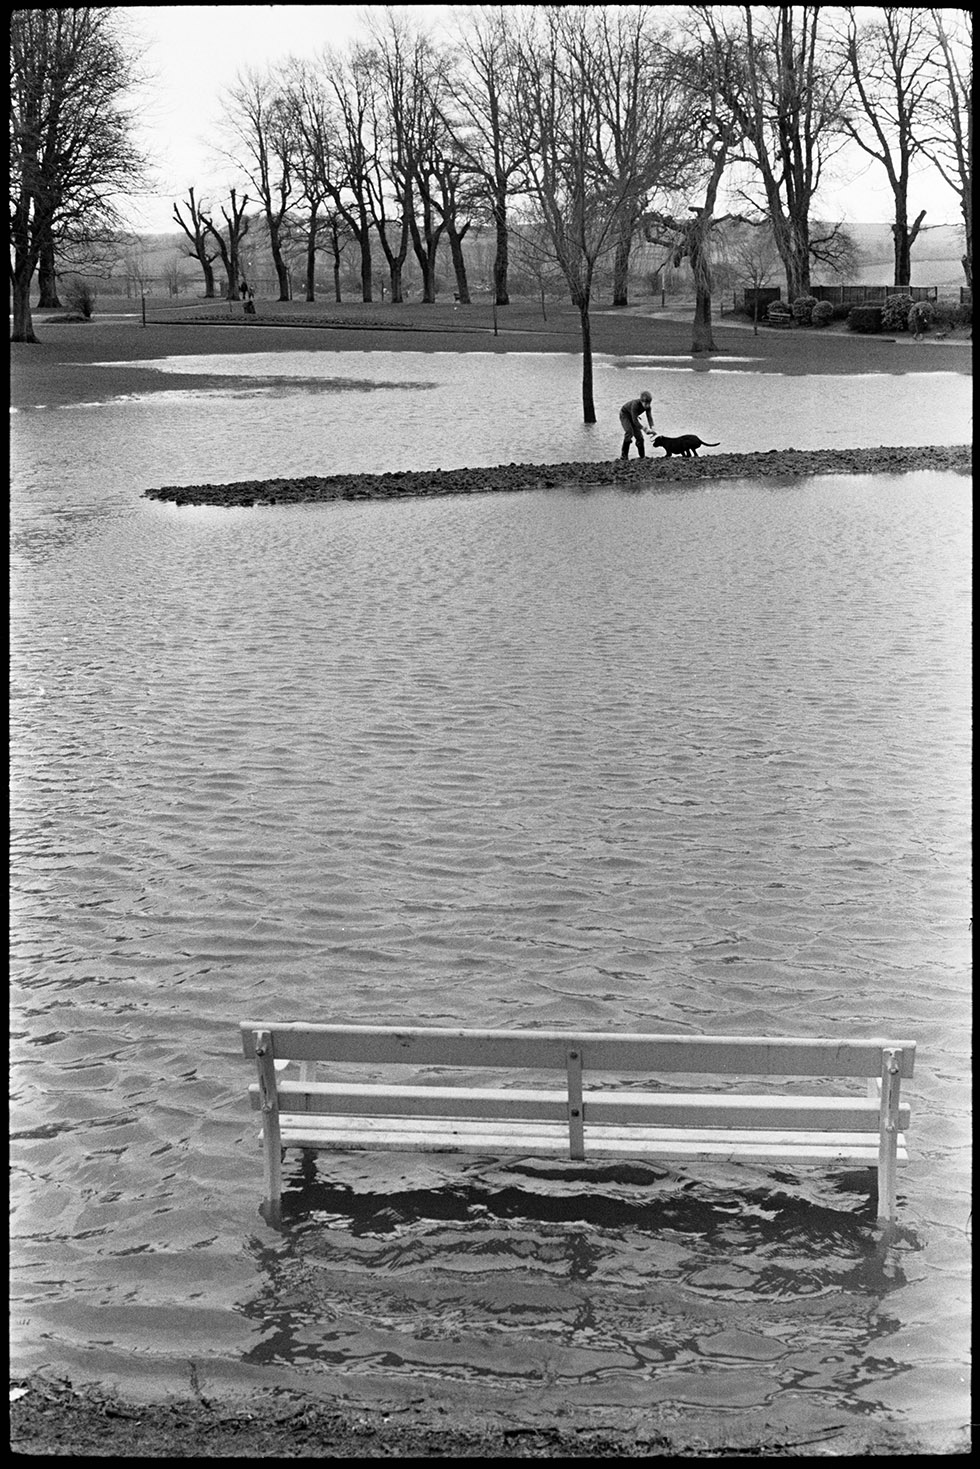 Flooded landscape, February, 1974. Documentary photograph by James Ravilious for the Beaford Archive © Beaford Arts